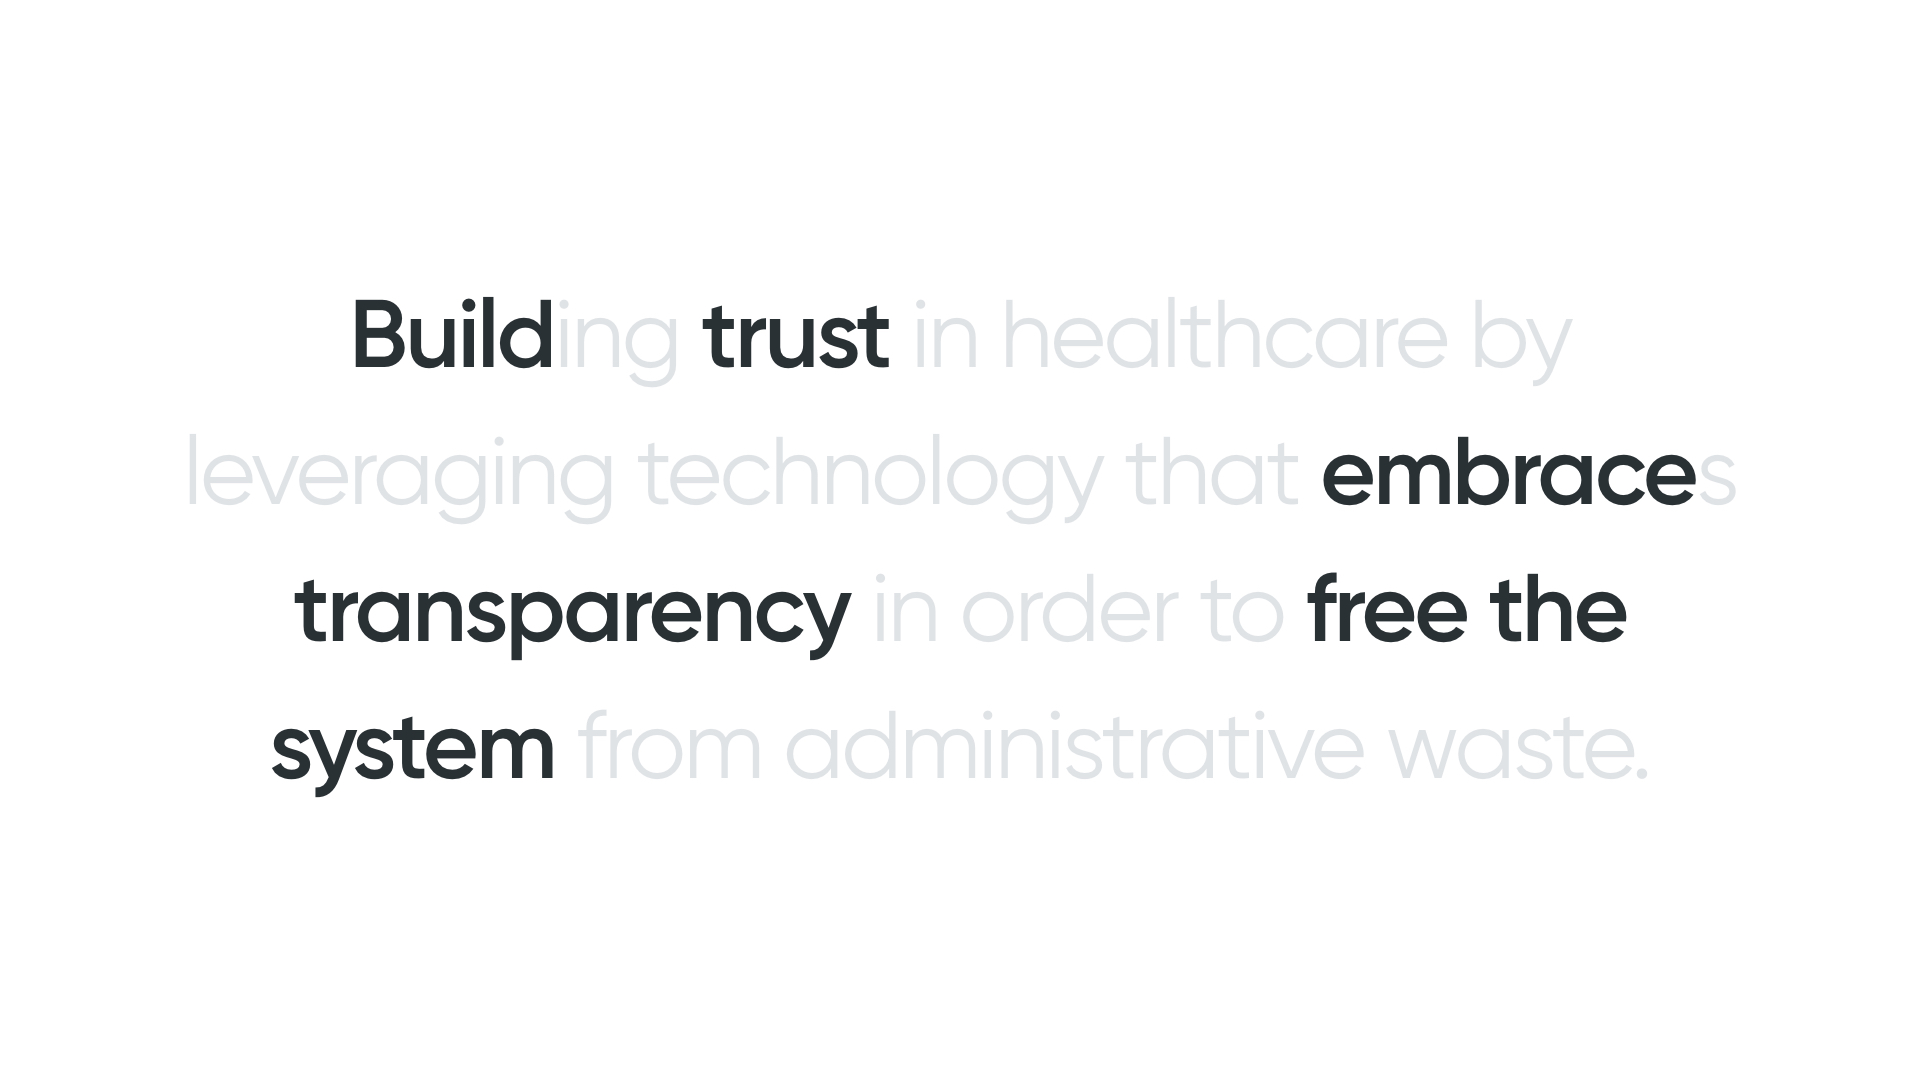 Building trust in healthcare by leveraging technology that embraces transparency in order to free the system from administrative waste.